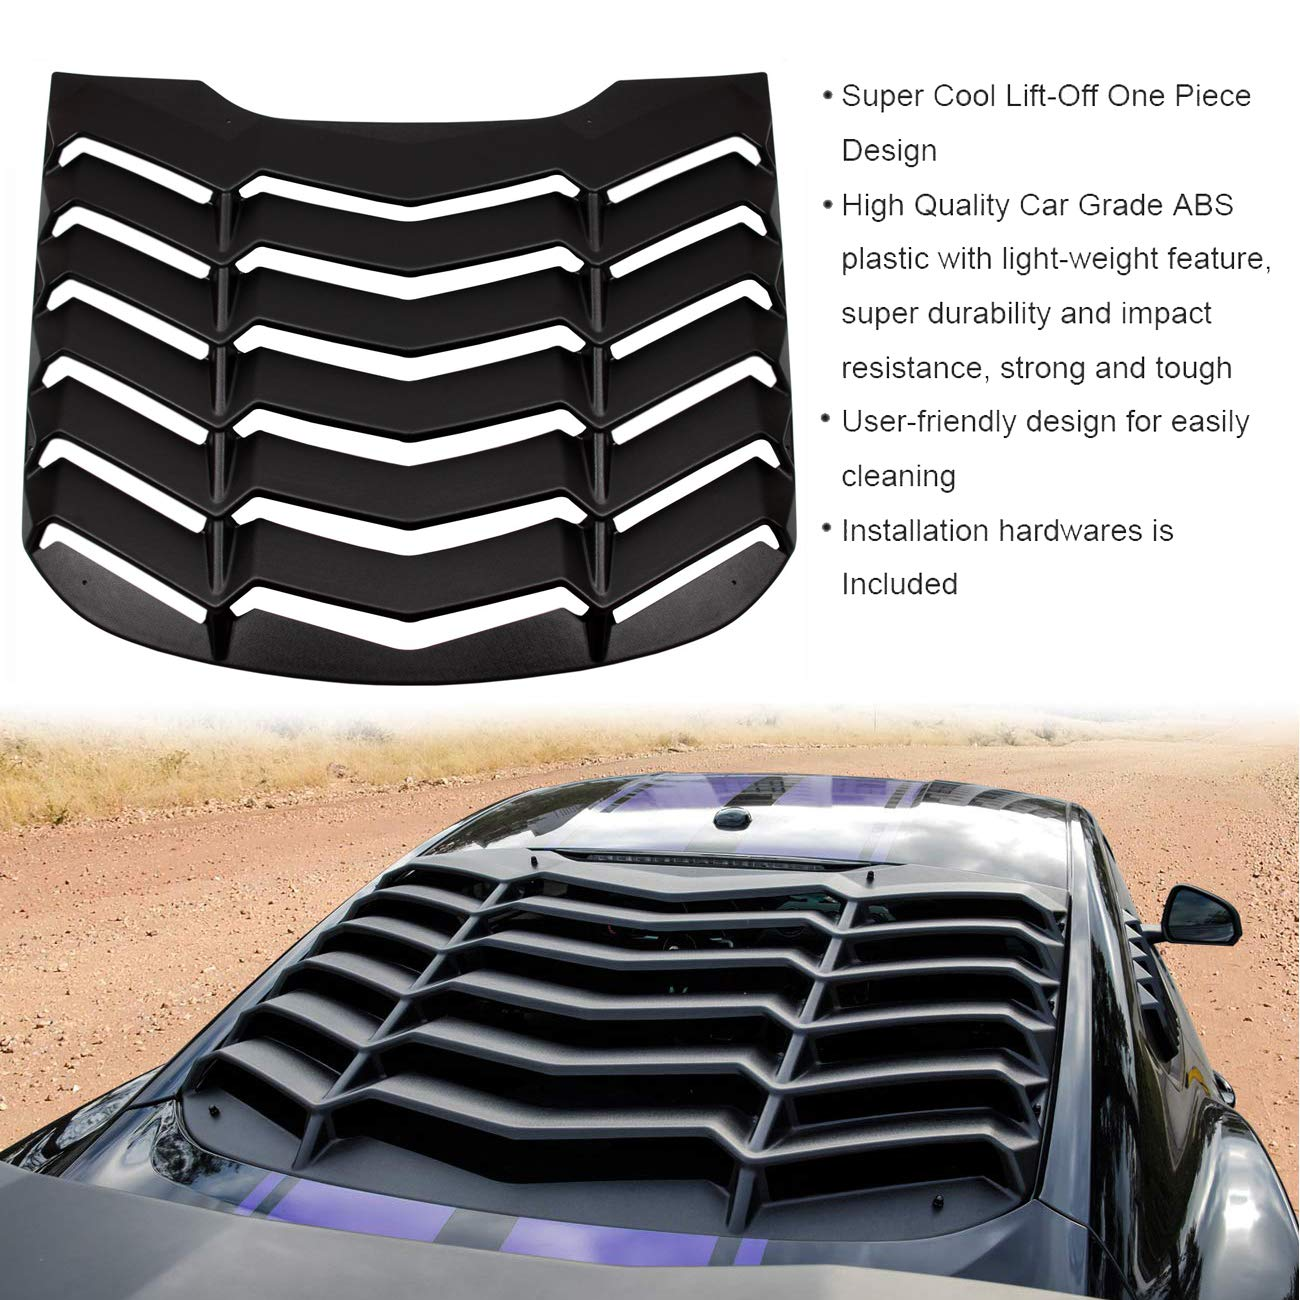 Sunluway Universal Lightweight Rear Spoiler Wing Tail Lid for Chevy Camaro Dodge Charger Challenger Ford Mustang GT Lambo